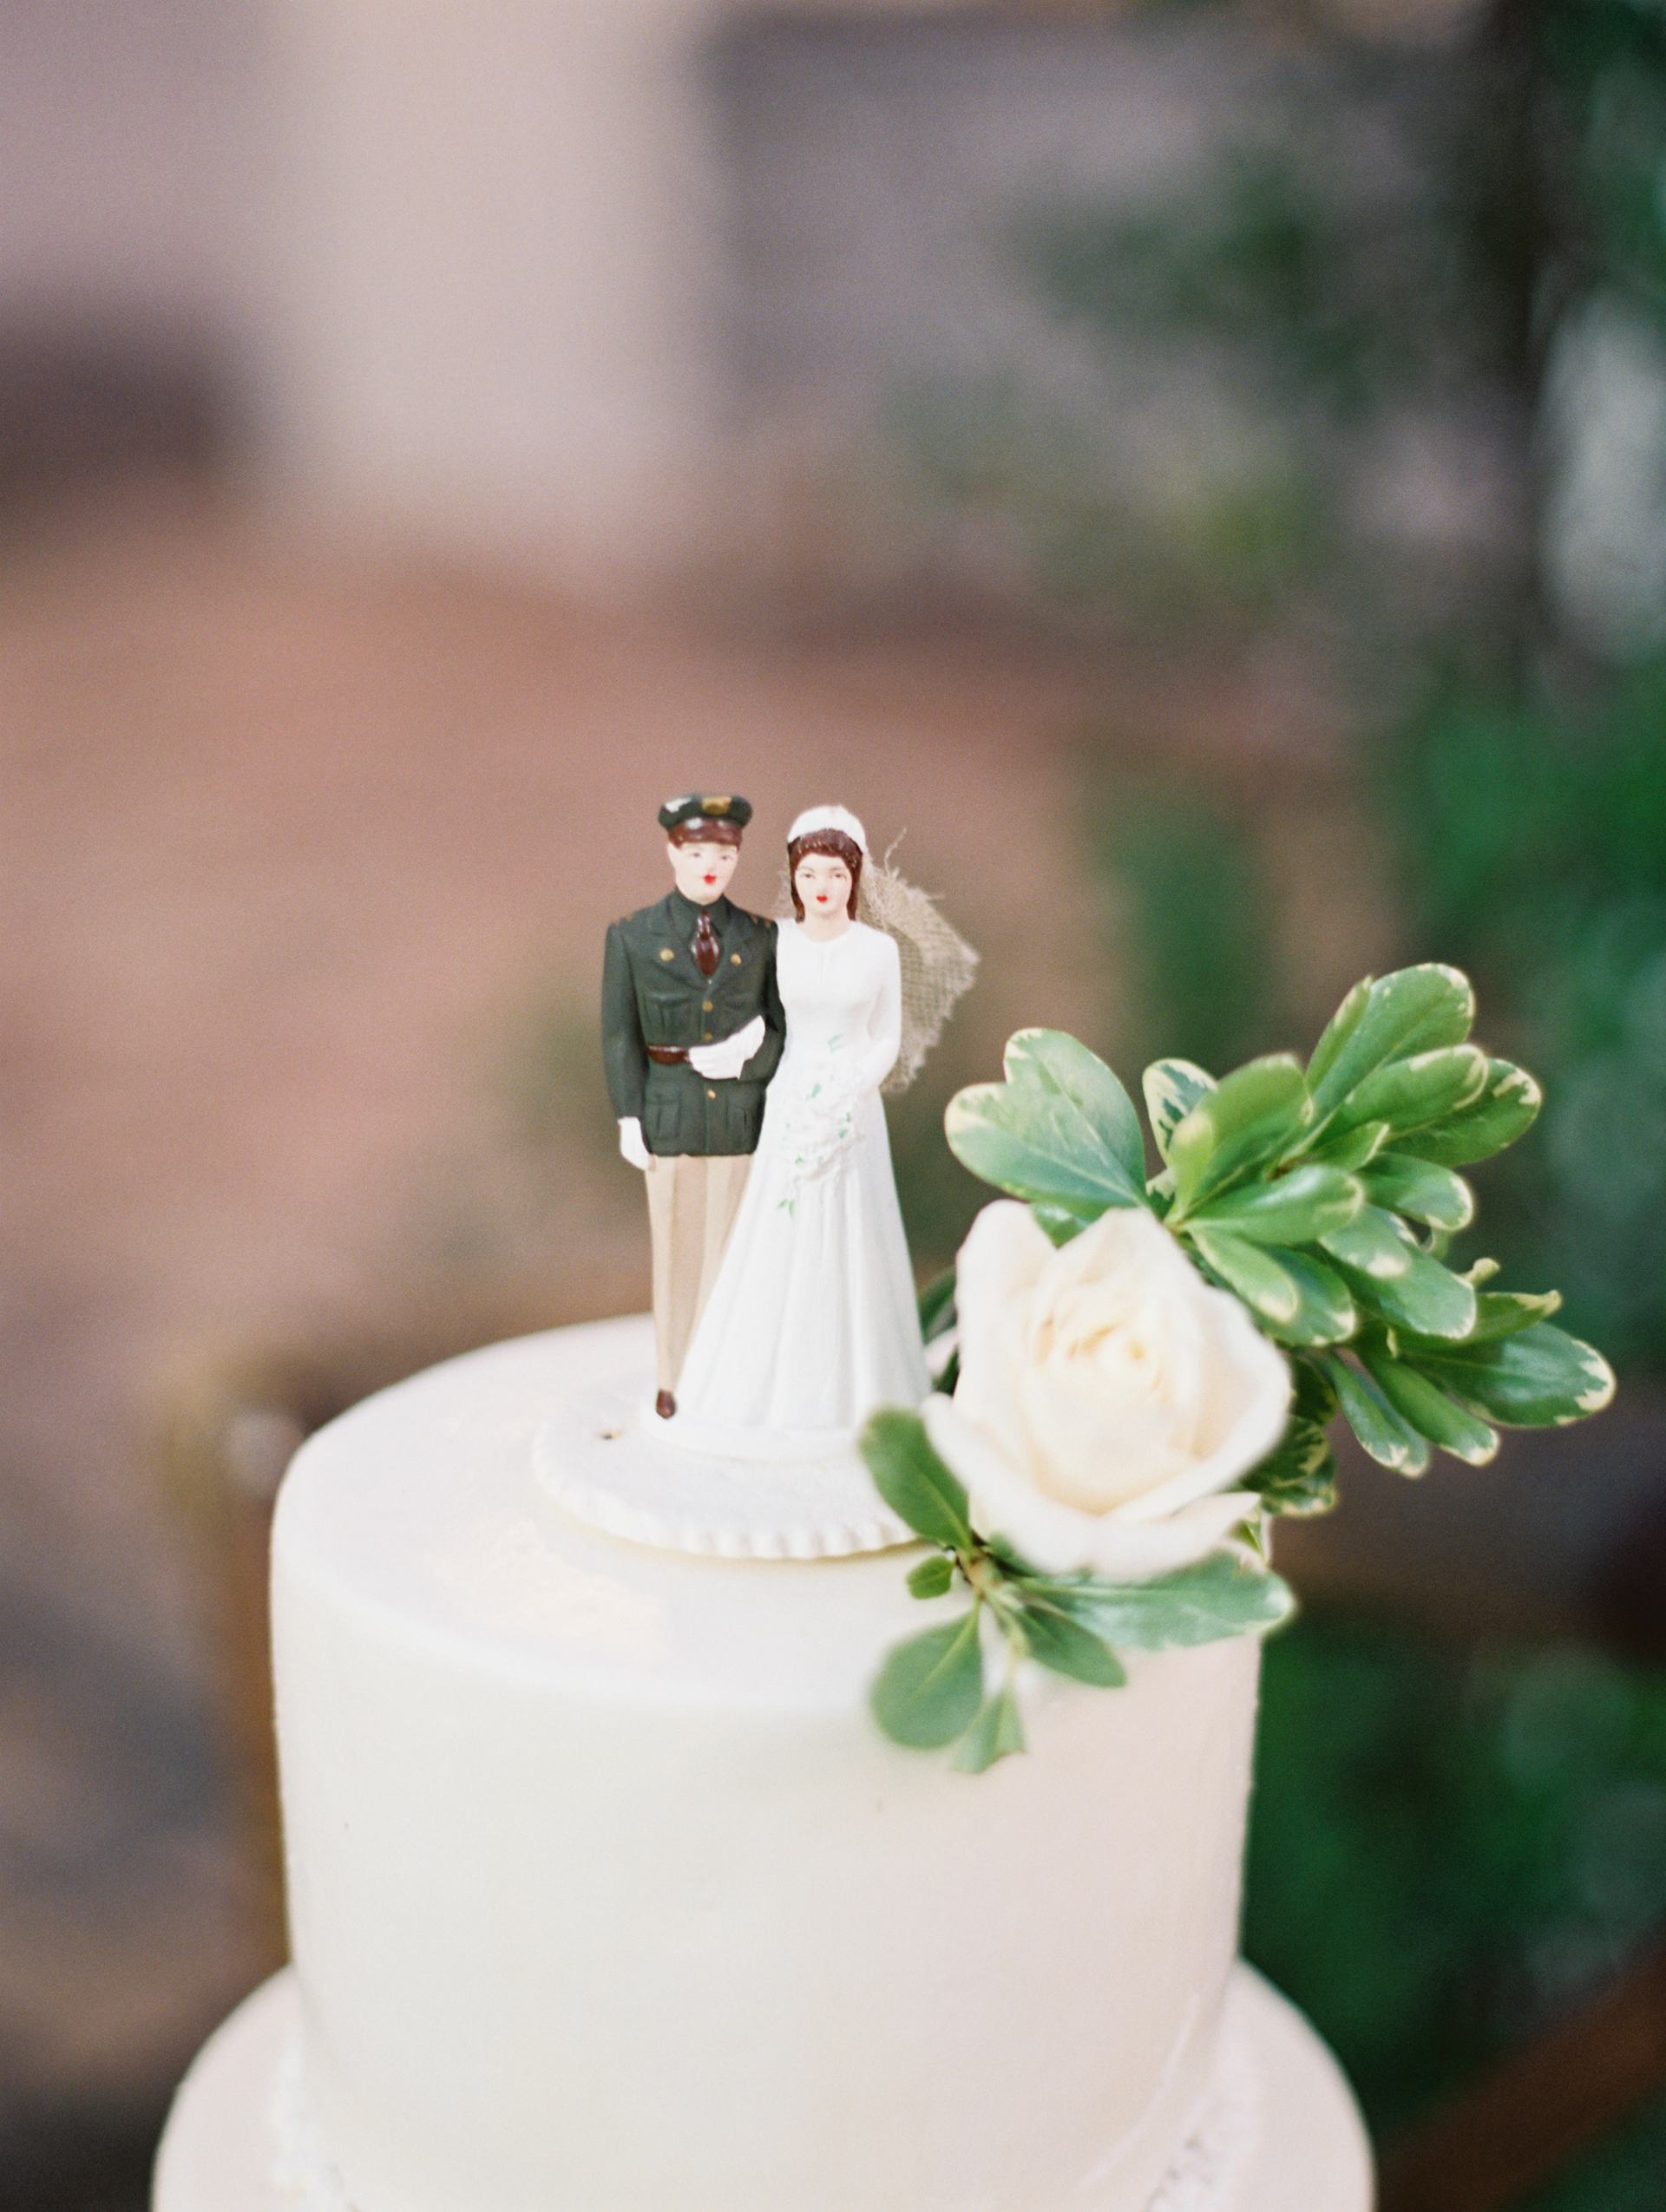 army officer groom and bride